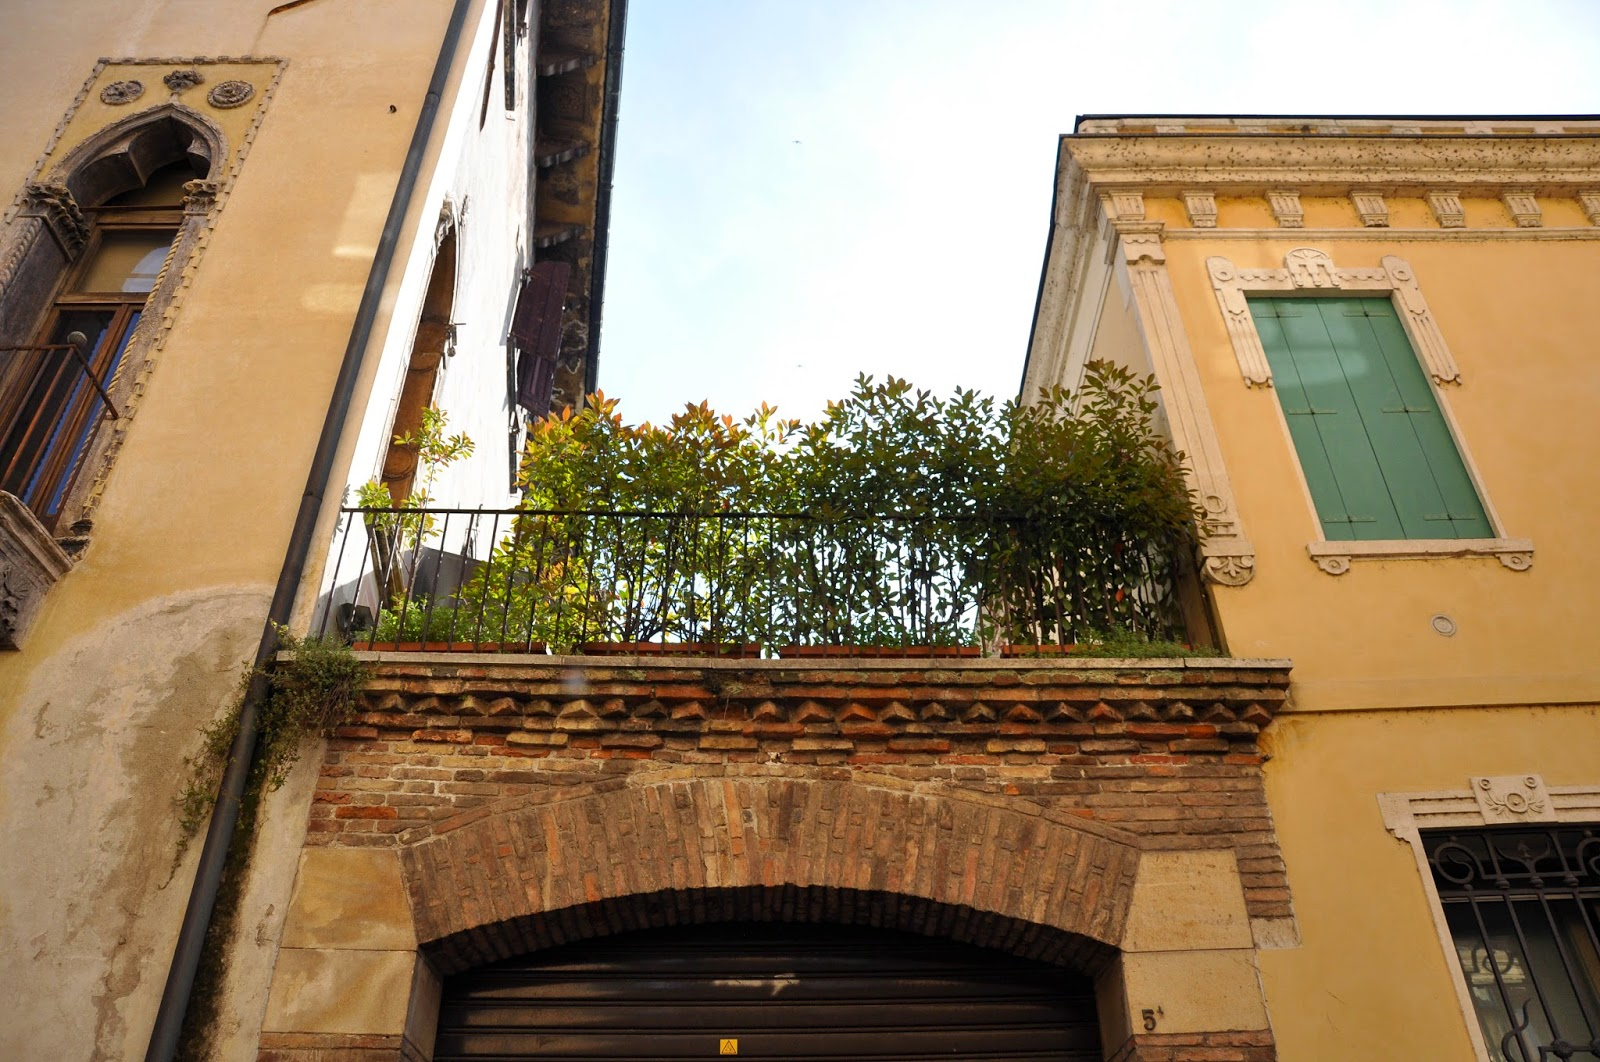 A private garden above a garage in Vicenza, Italy